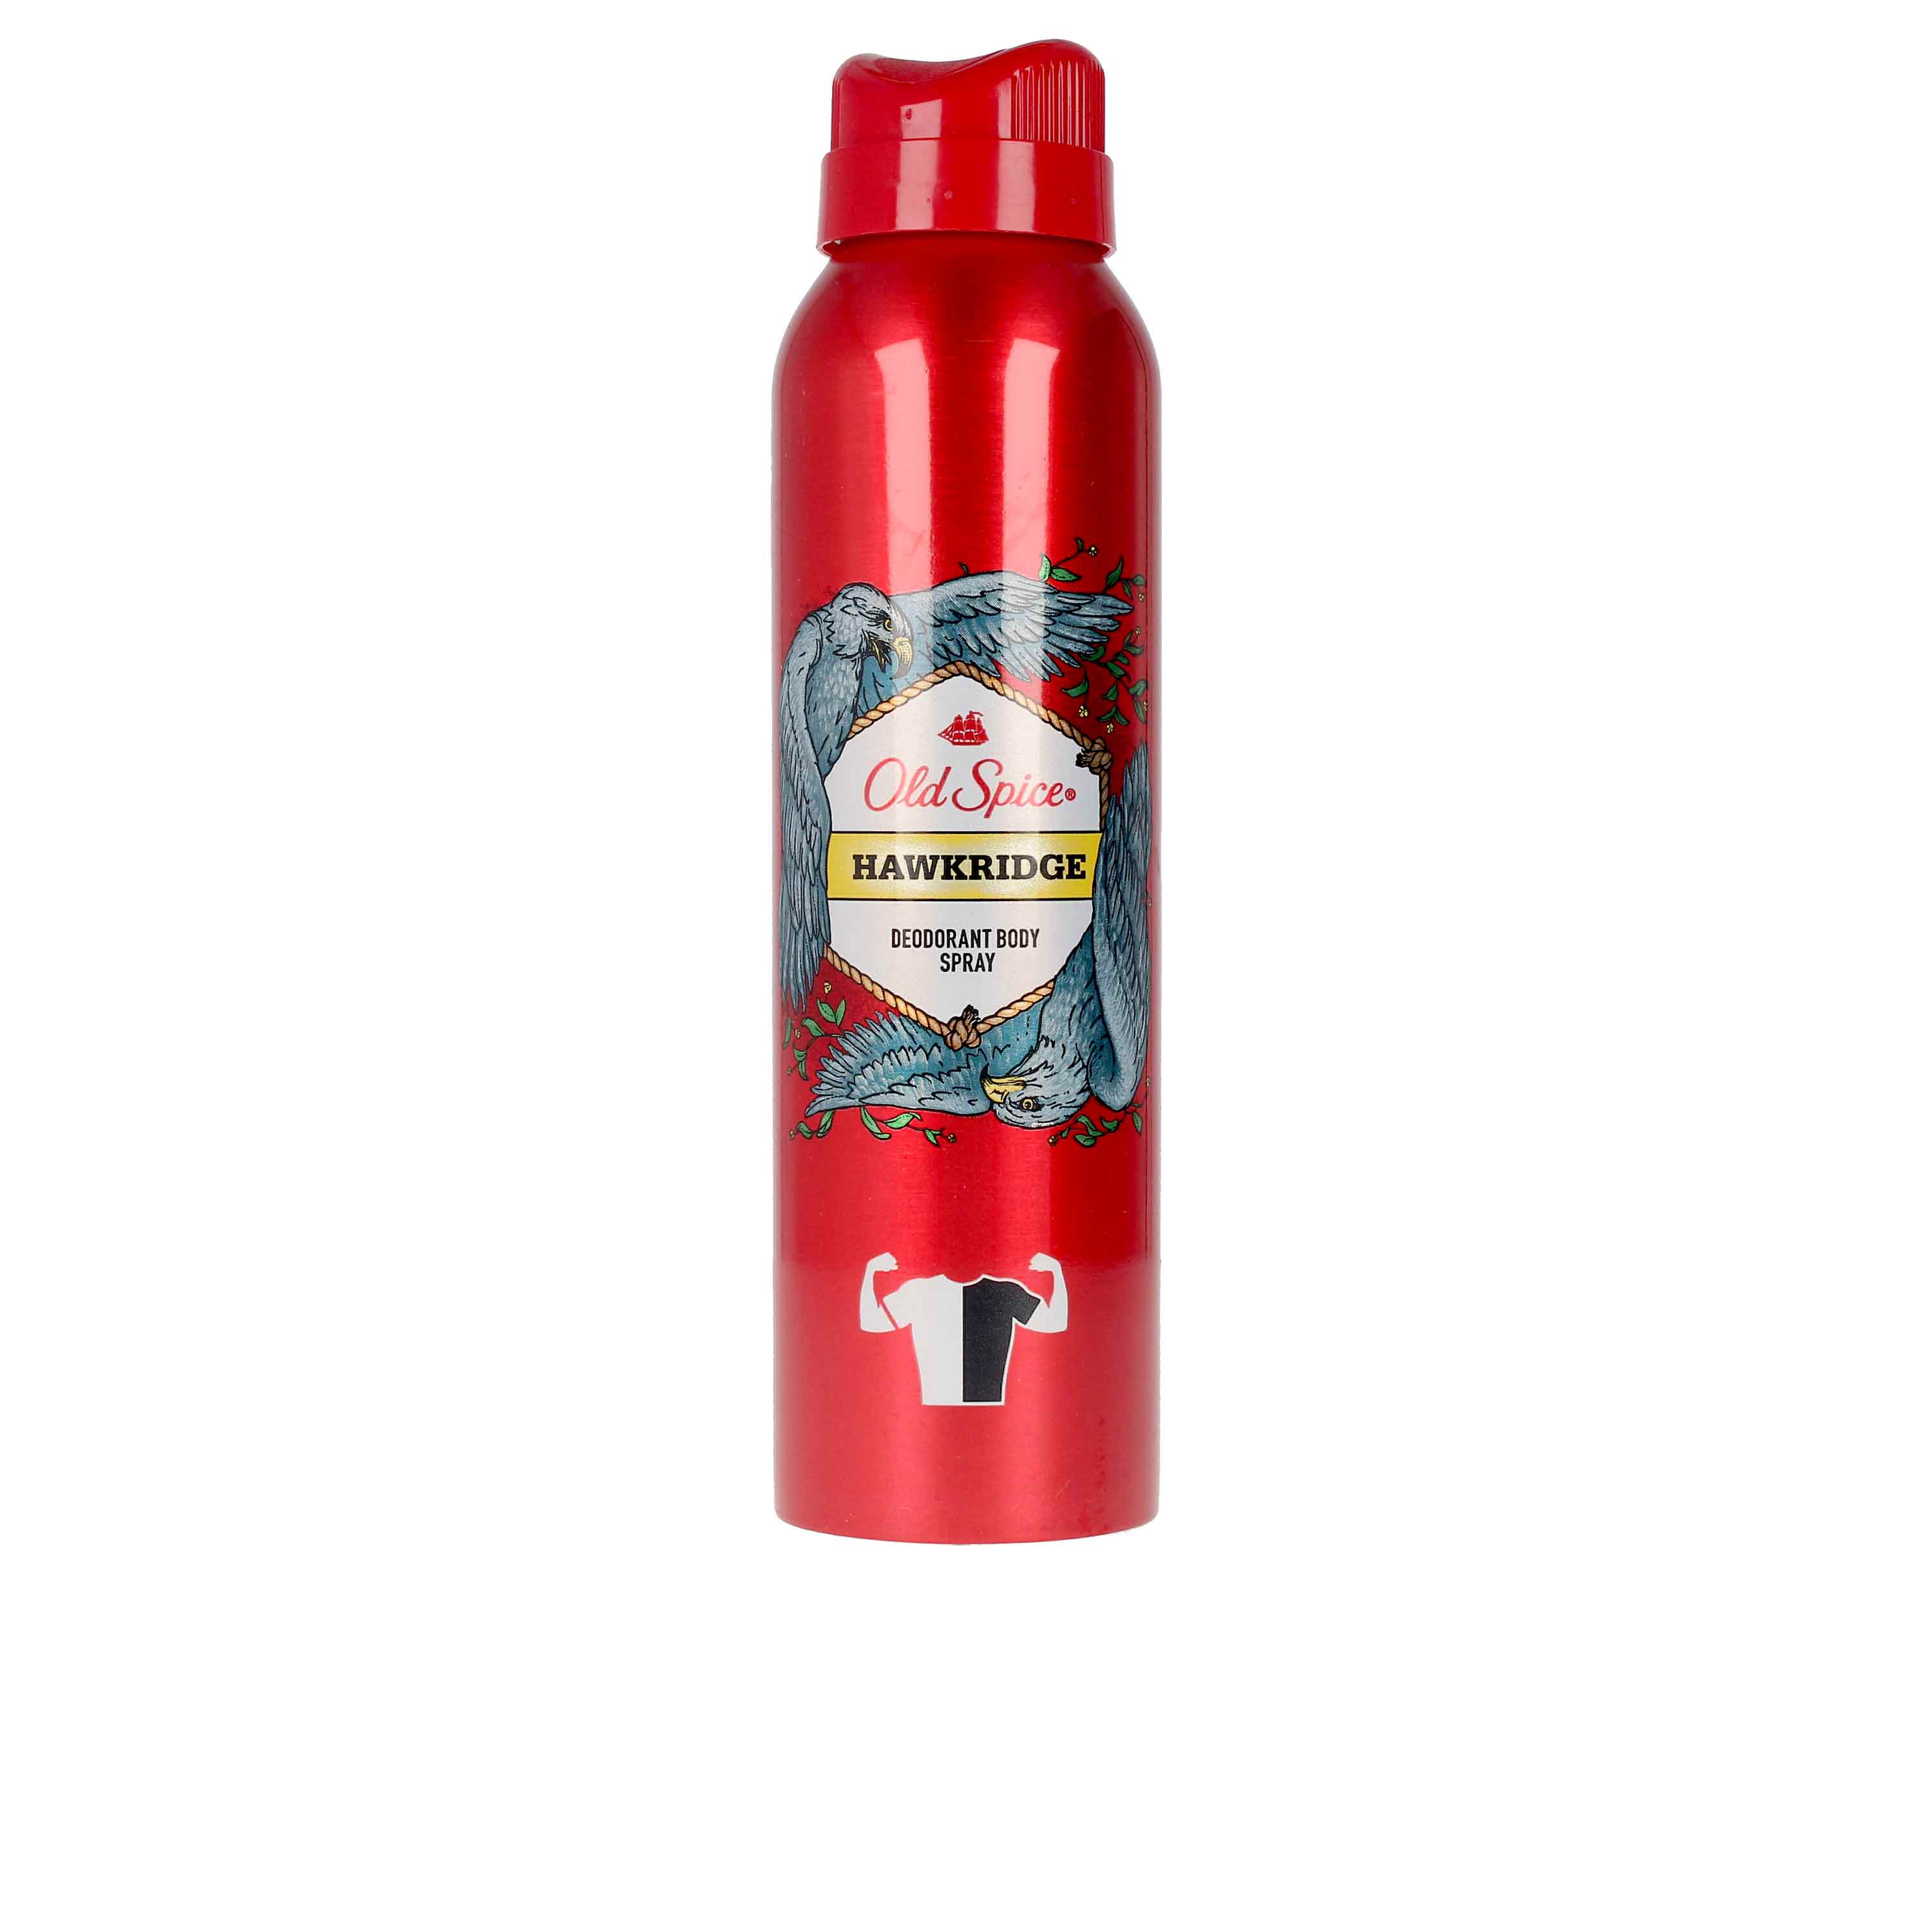 Deodorant HAWKRIDGE deodorant spray Old Spice